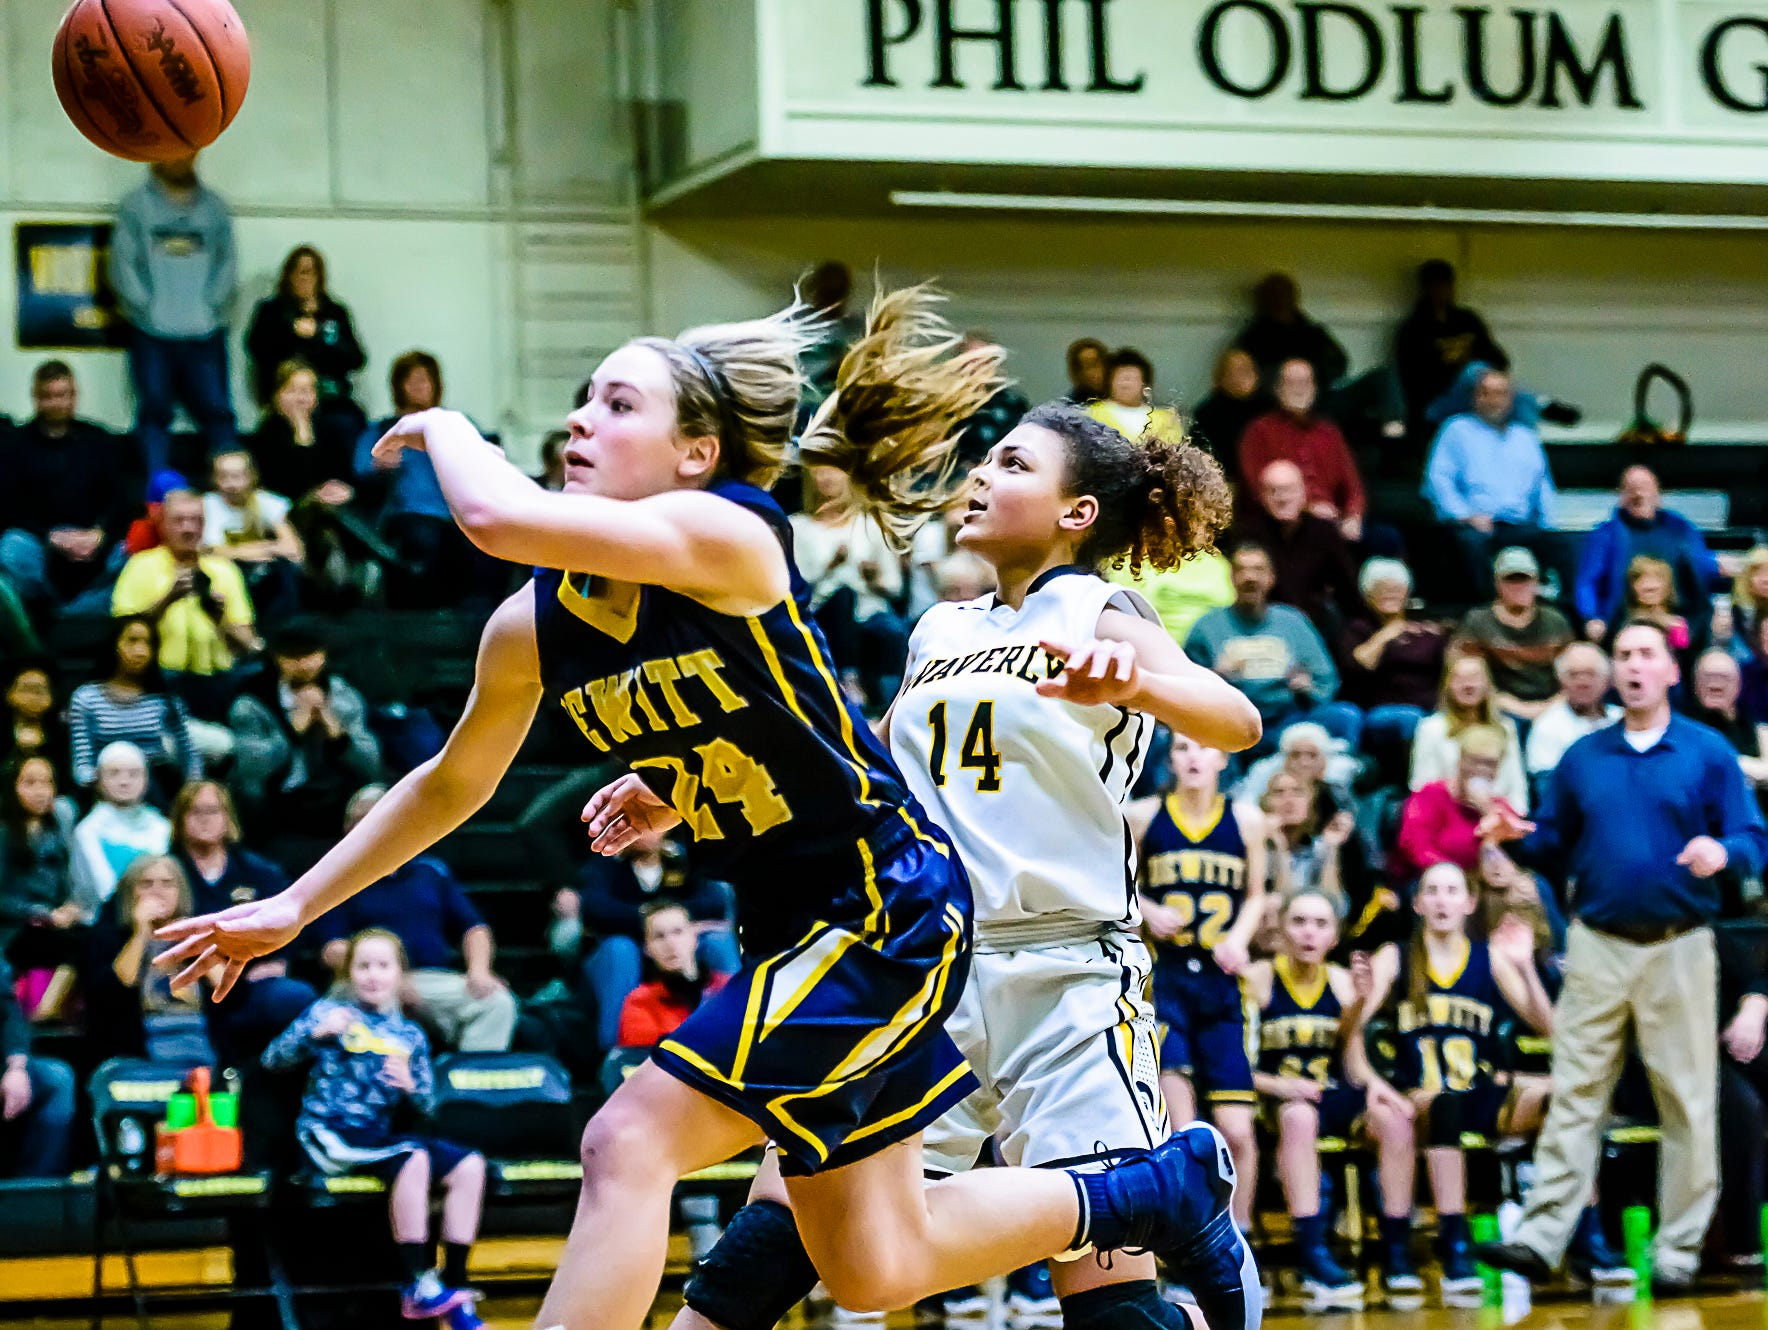 Priscilla Trainor ,14, of Waverly intentionally fouls Annie McIntosh ,24, of DeWitt with 6.4 seconds remaining in their game and DeWitt leading 53-50 Friday February 10, 2017 in Delta Township. The Intentional foul gave DeWitt two freethrows and possession of the ball to seal the win. KEVIN W. FOWLER PHOTO